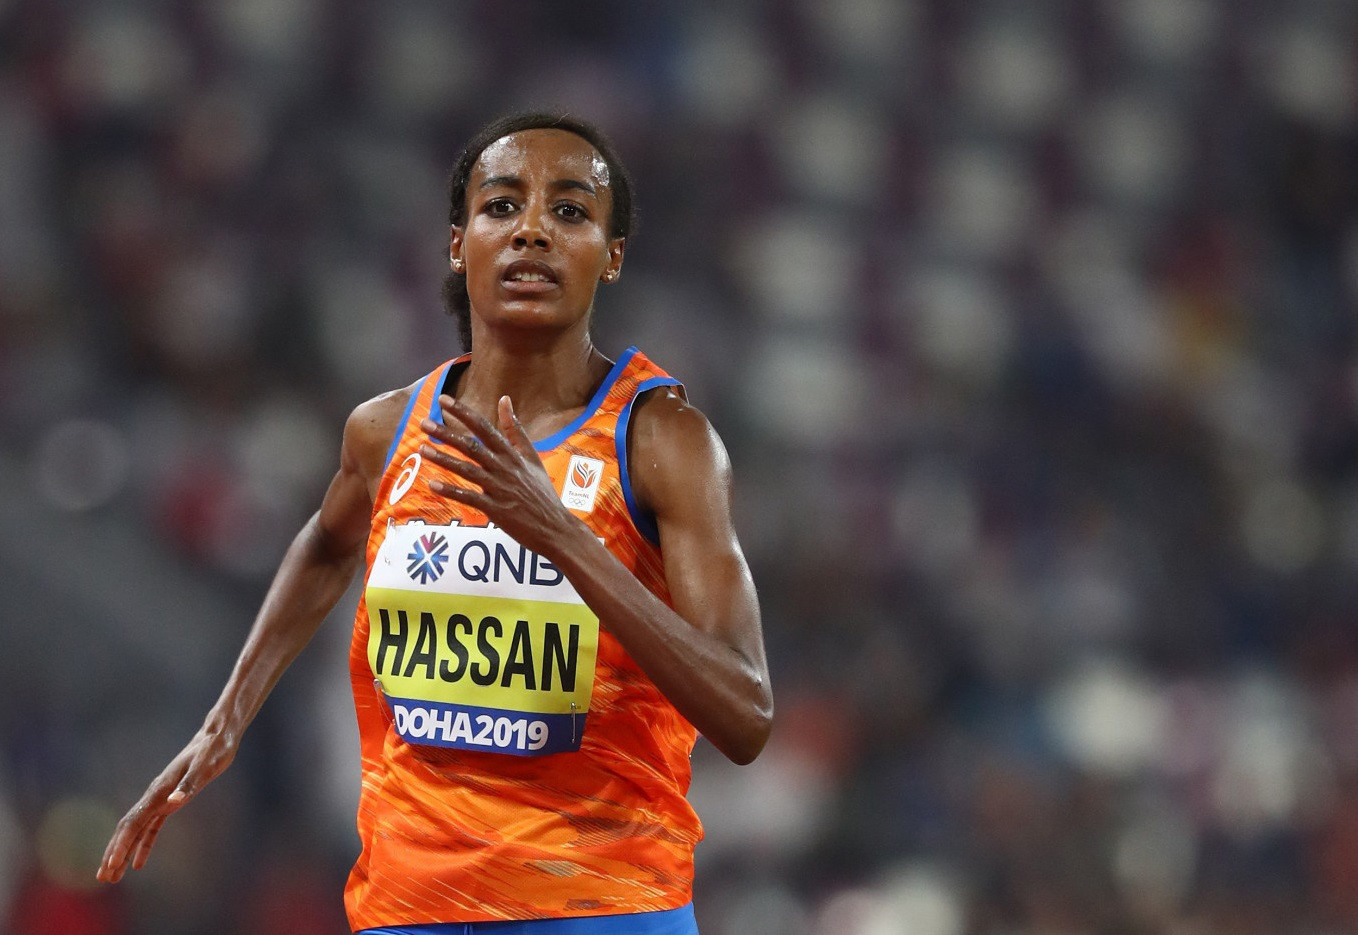 Farah, Hassan, Kosgei and Kipyegon seek world records at Brussels Diamond League meeting